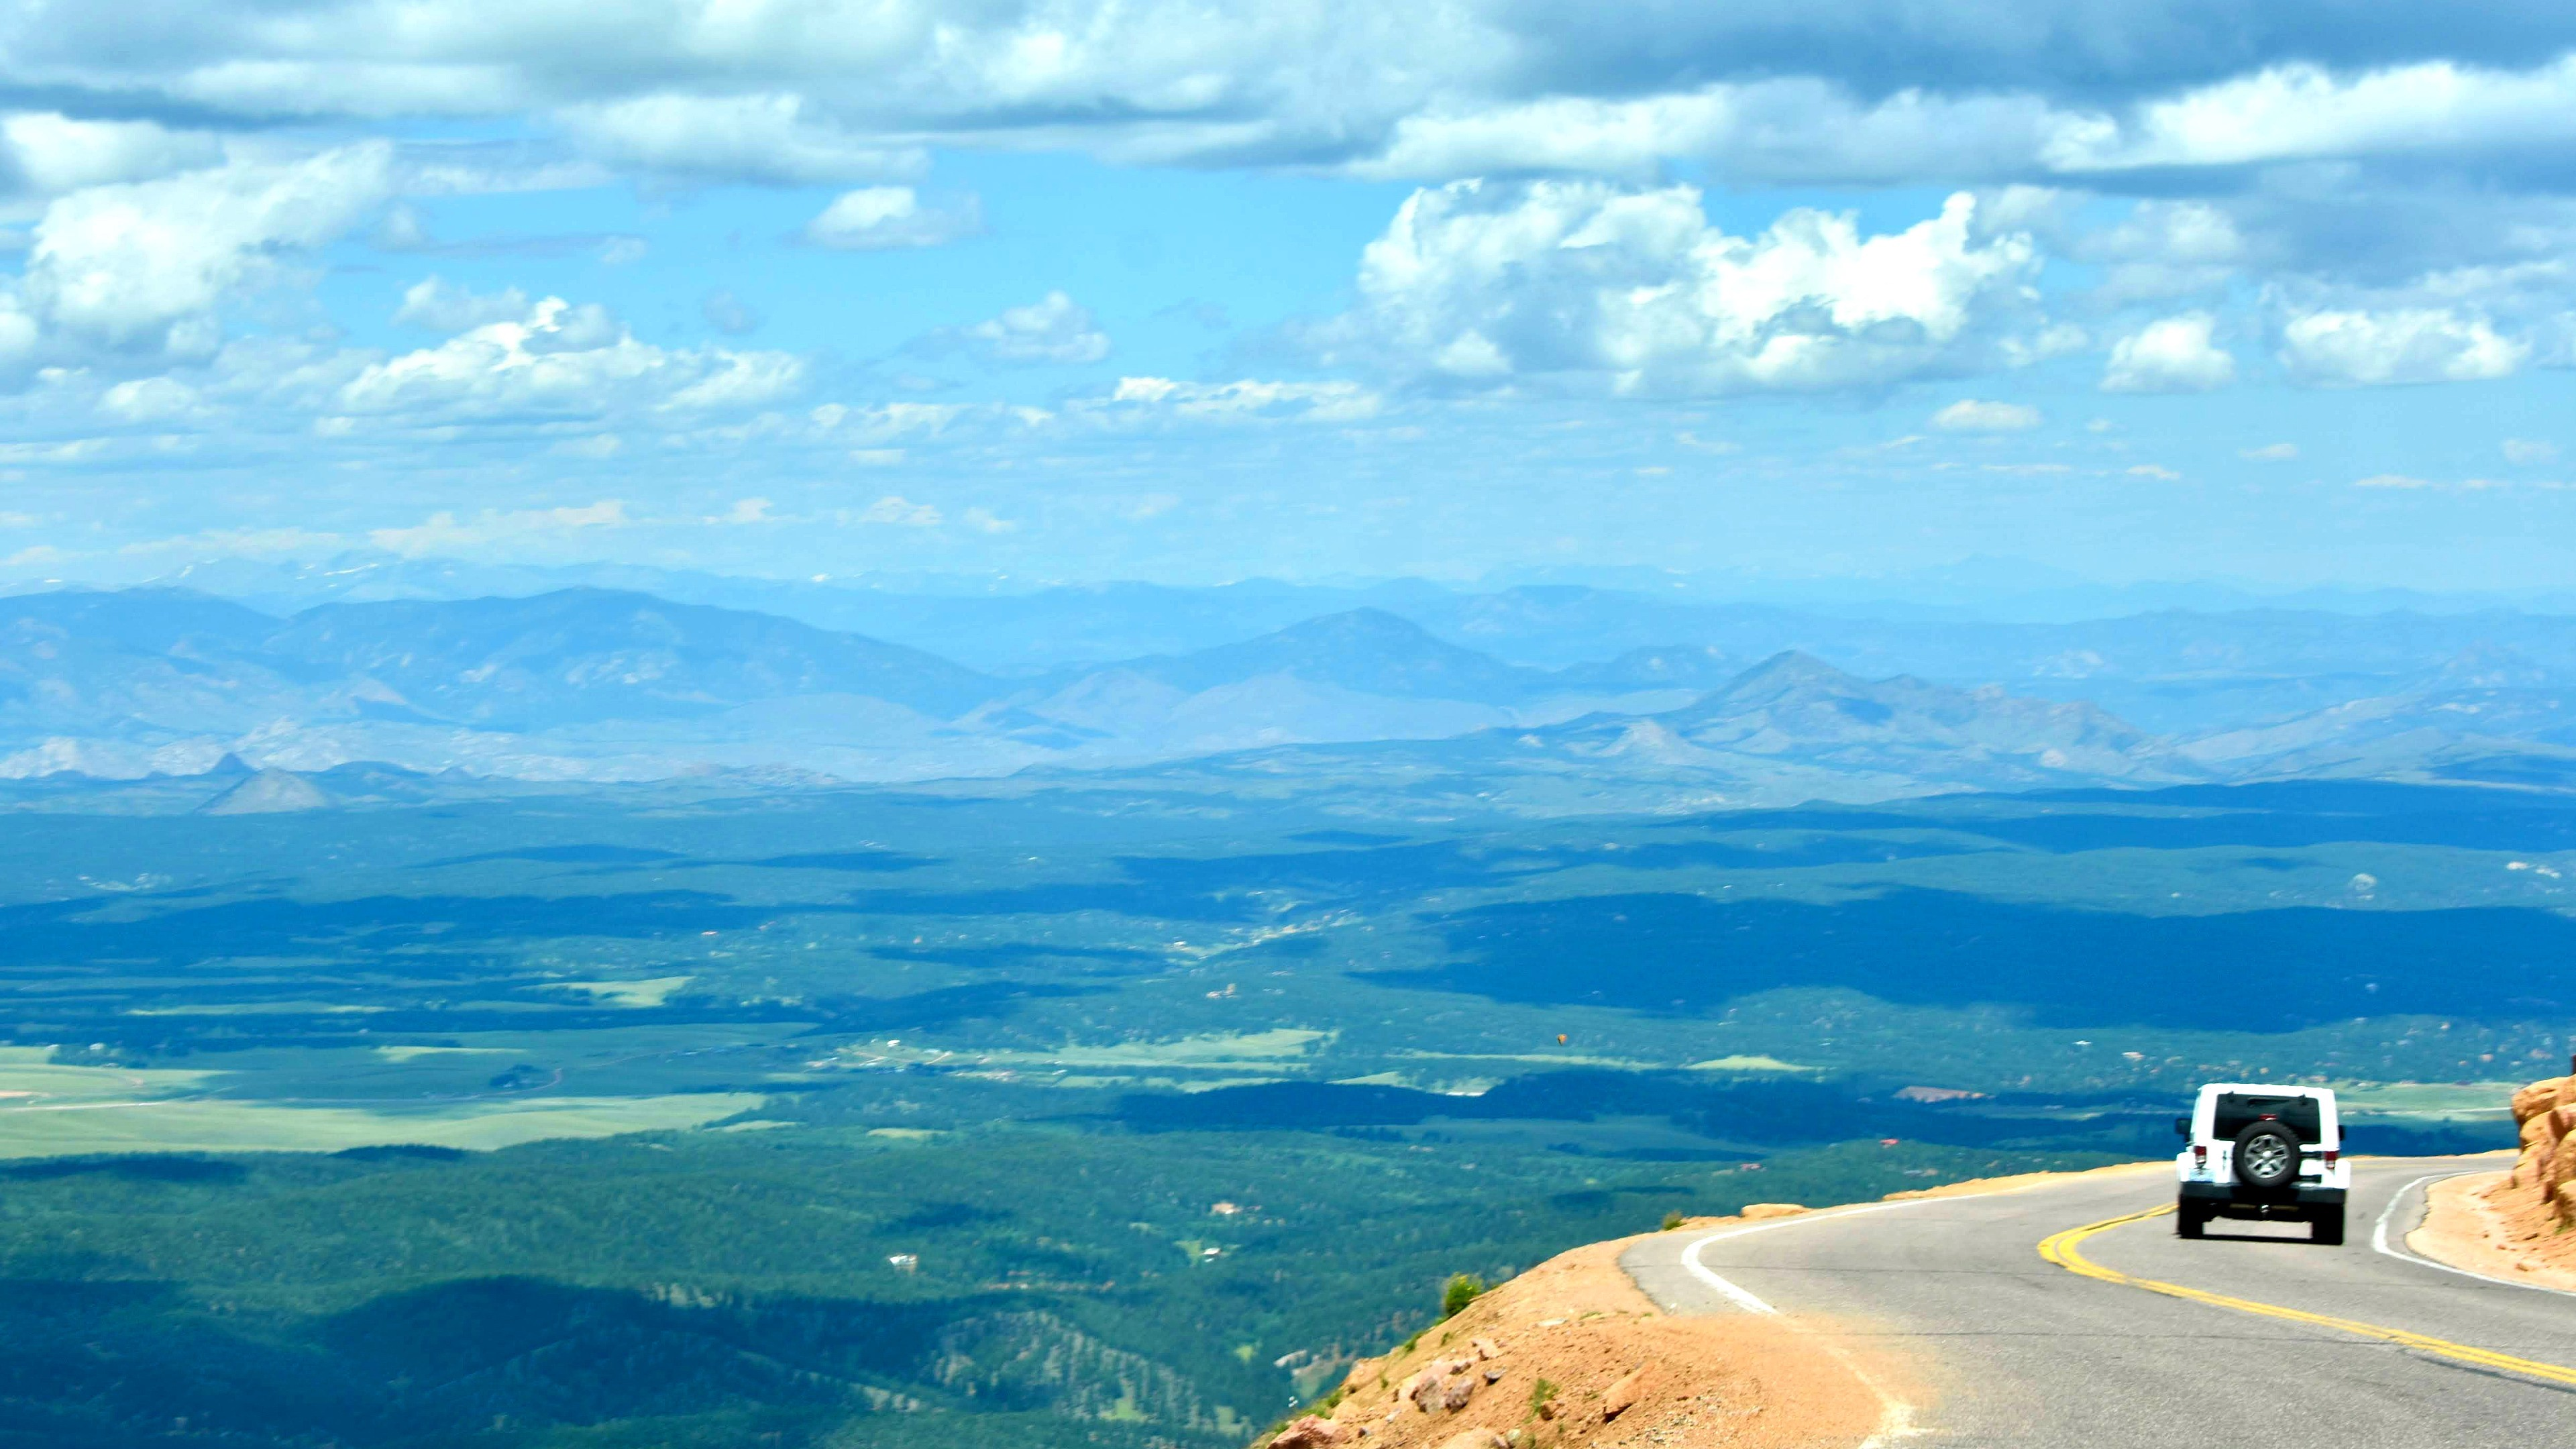 Photo: a view from the road on Pike's Peak mountain in Colorado.